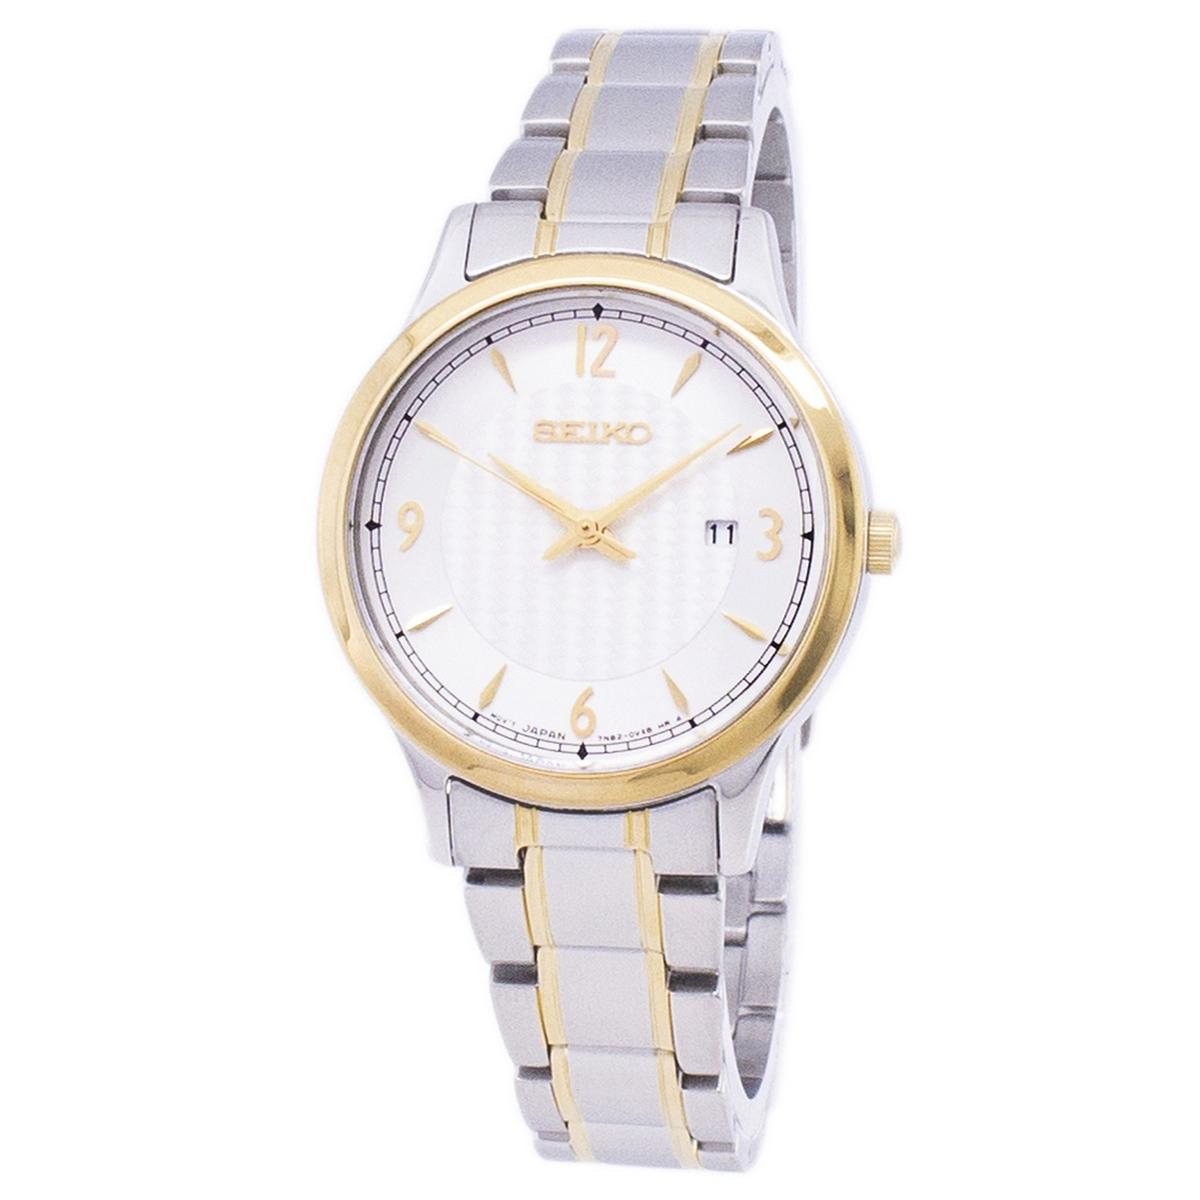 Harga Jual Seiko Chronograph Jam Tangan Pria Strap Stainless Stell Steel Silver Sks521p1 Classic Multicolored Case Two Tone Bracelet